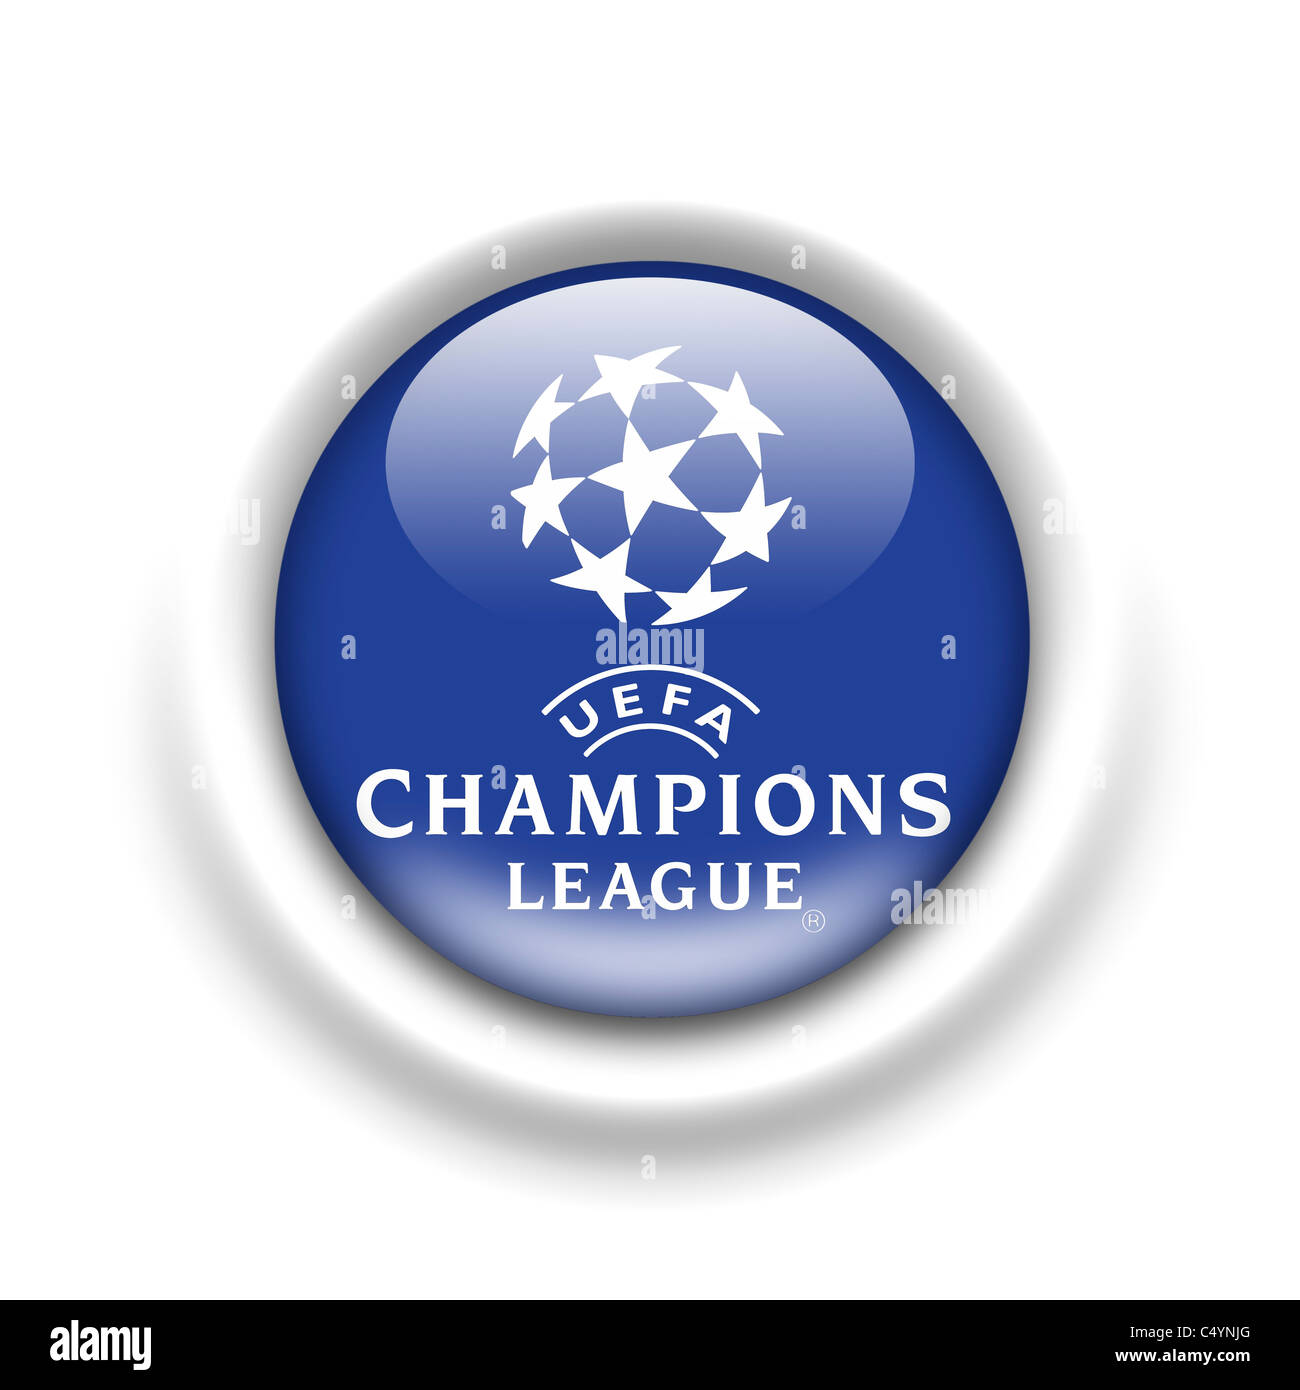 champions league uefa logo flag symbol icon stock photo alamy https www alamy com stock photo champions league uefa logo flag symbol icon 37489048 html